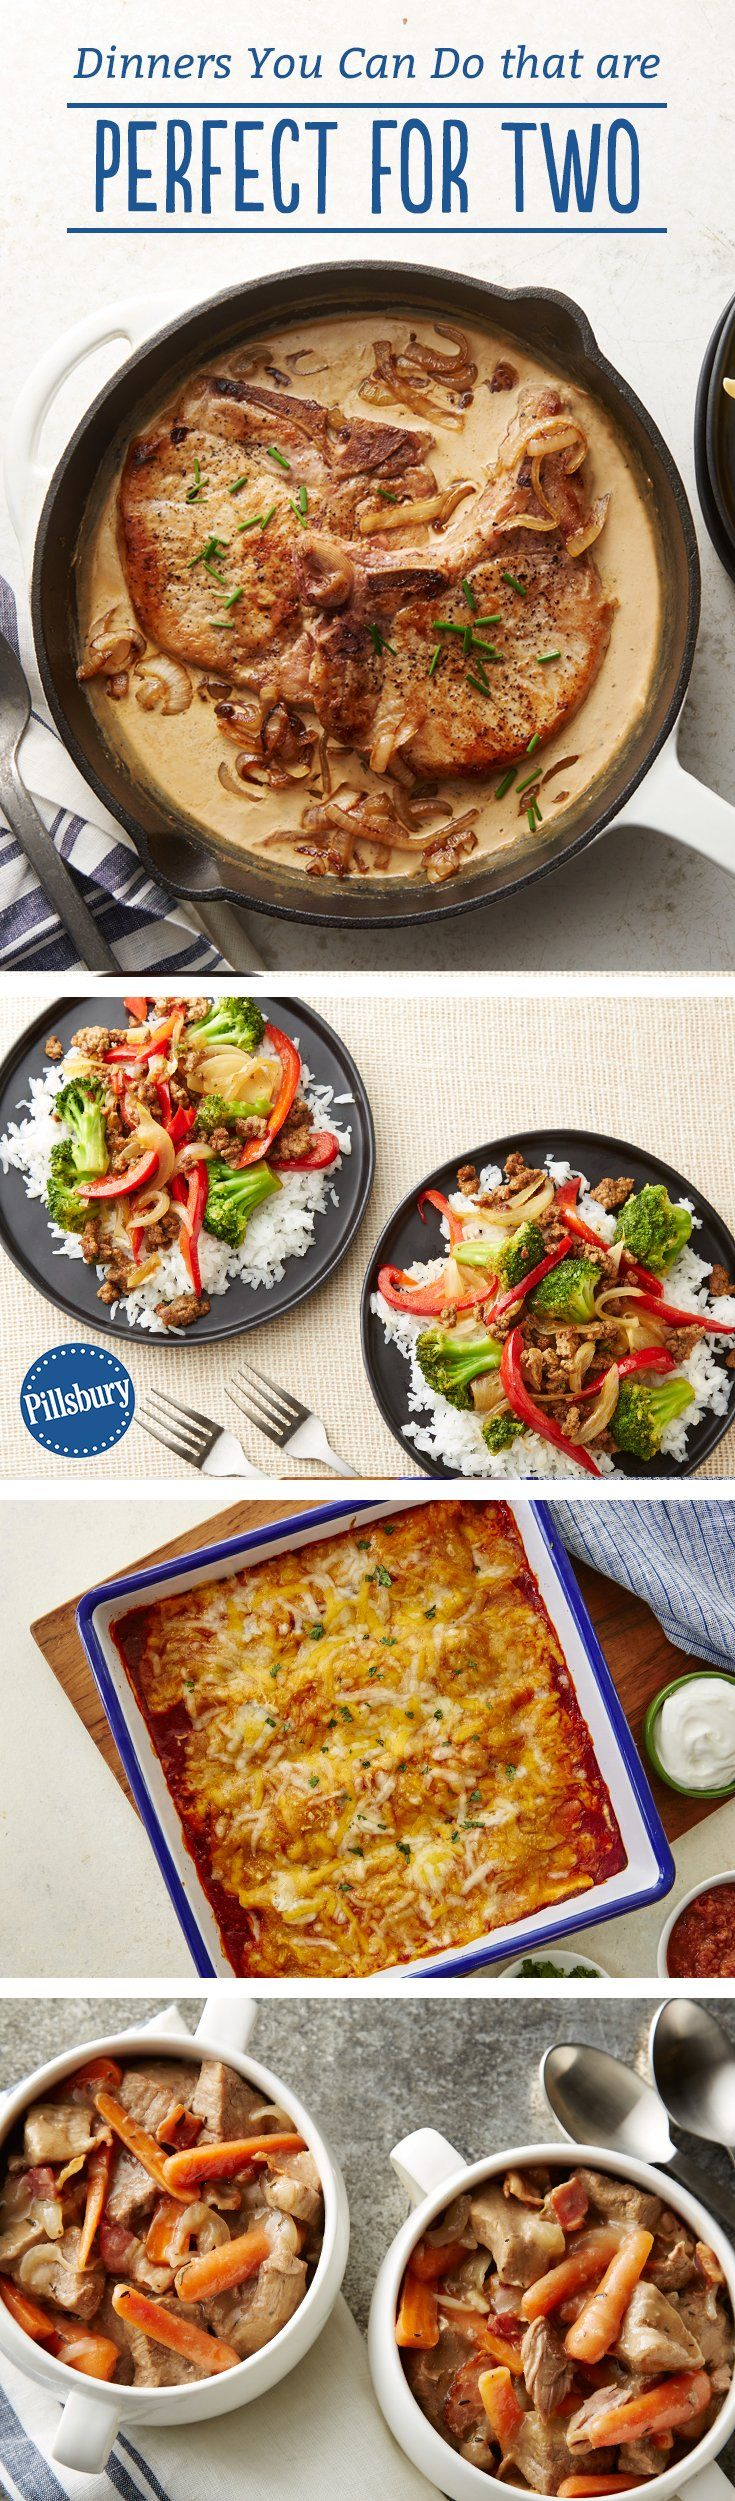 Dinners You Can Do That Are Perfect For Two Recipes Cooking Dinner